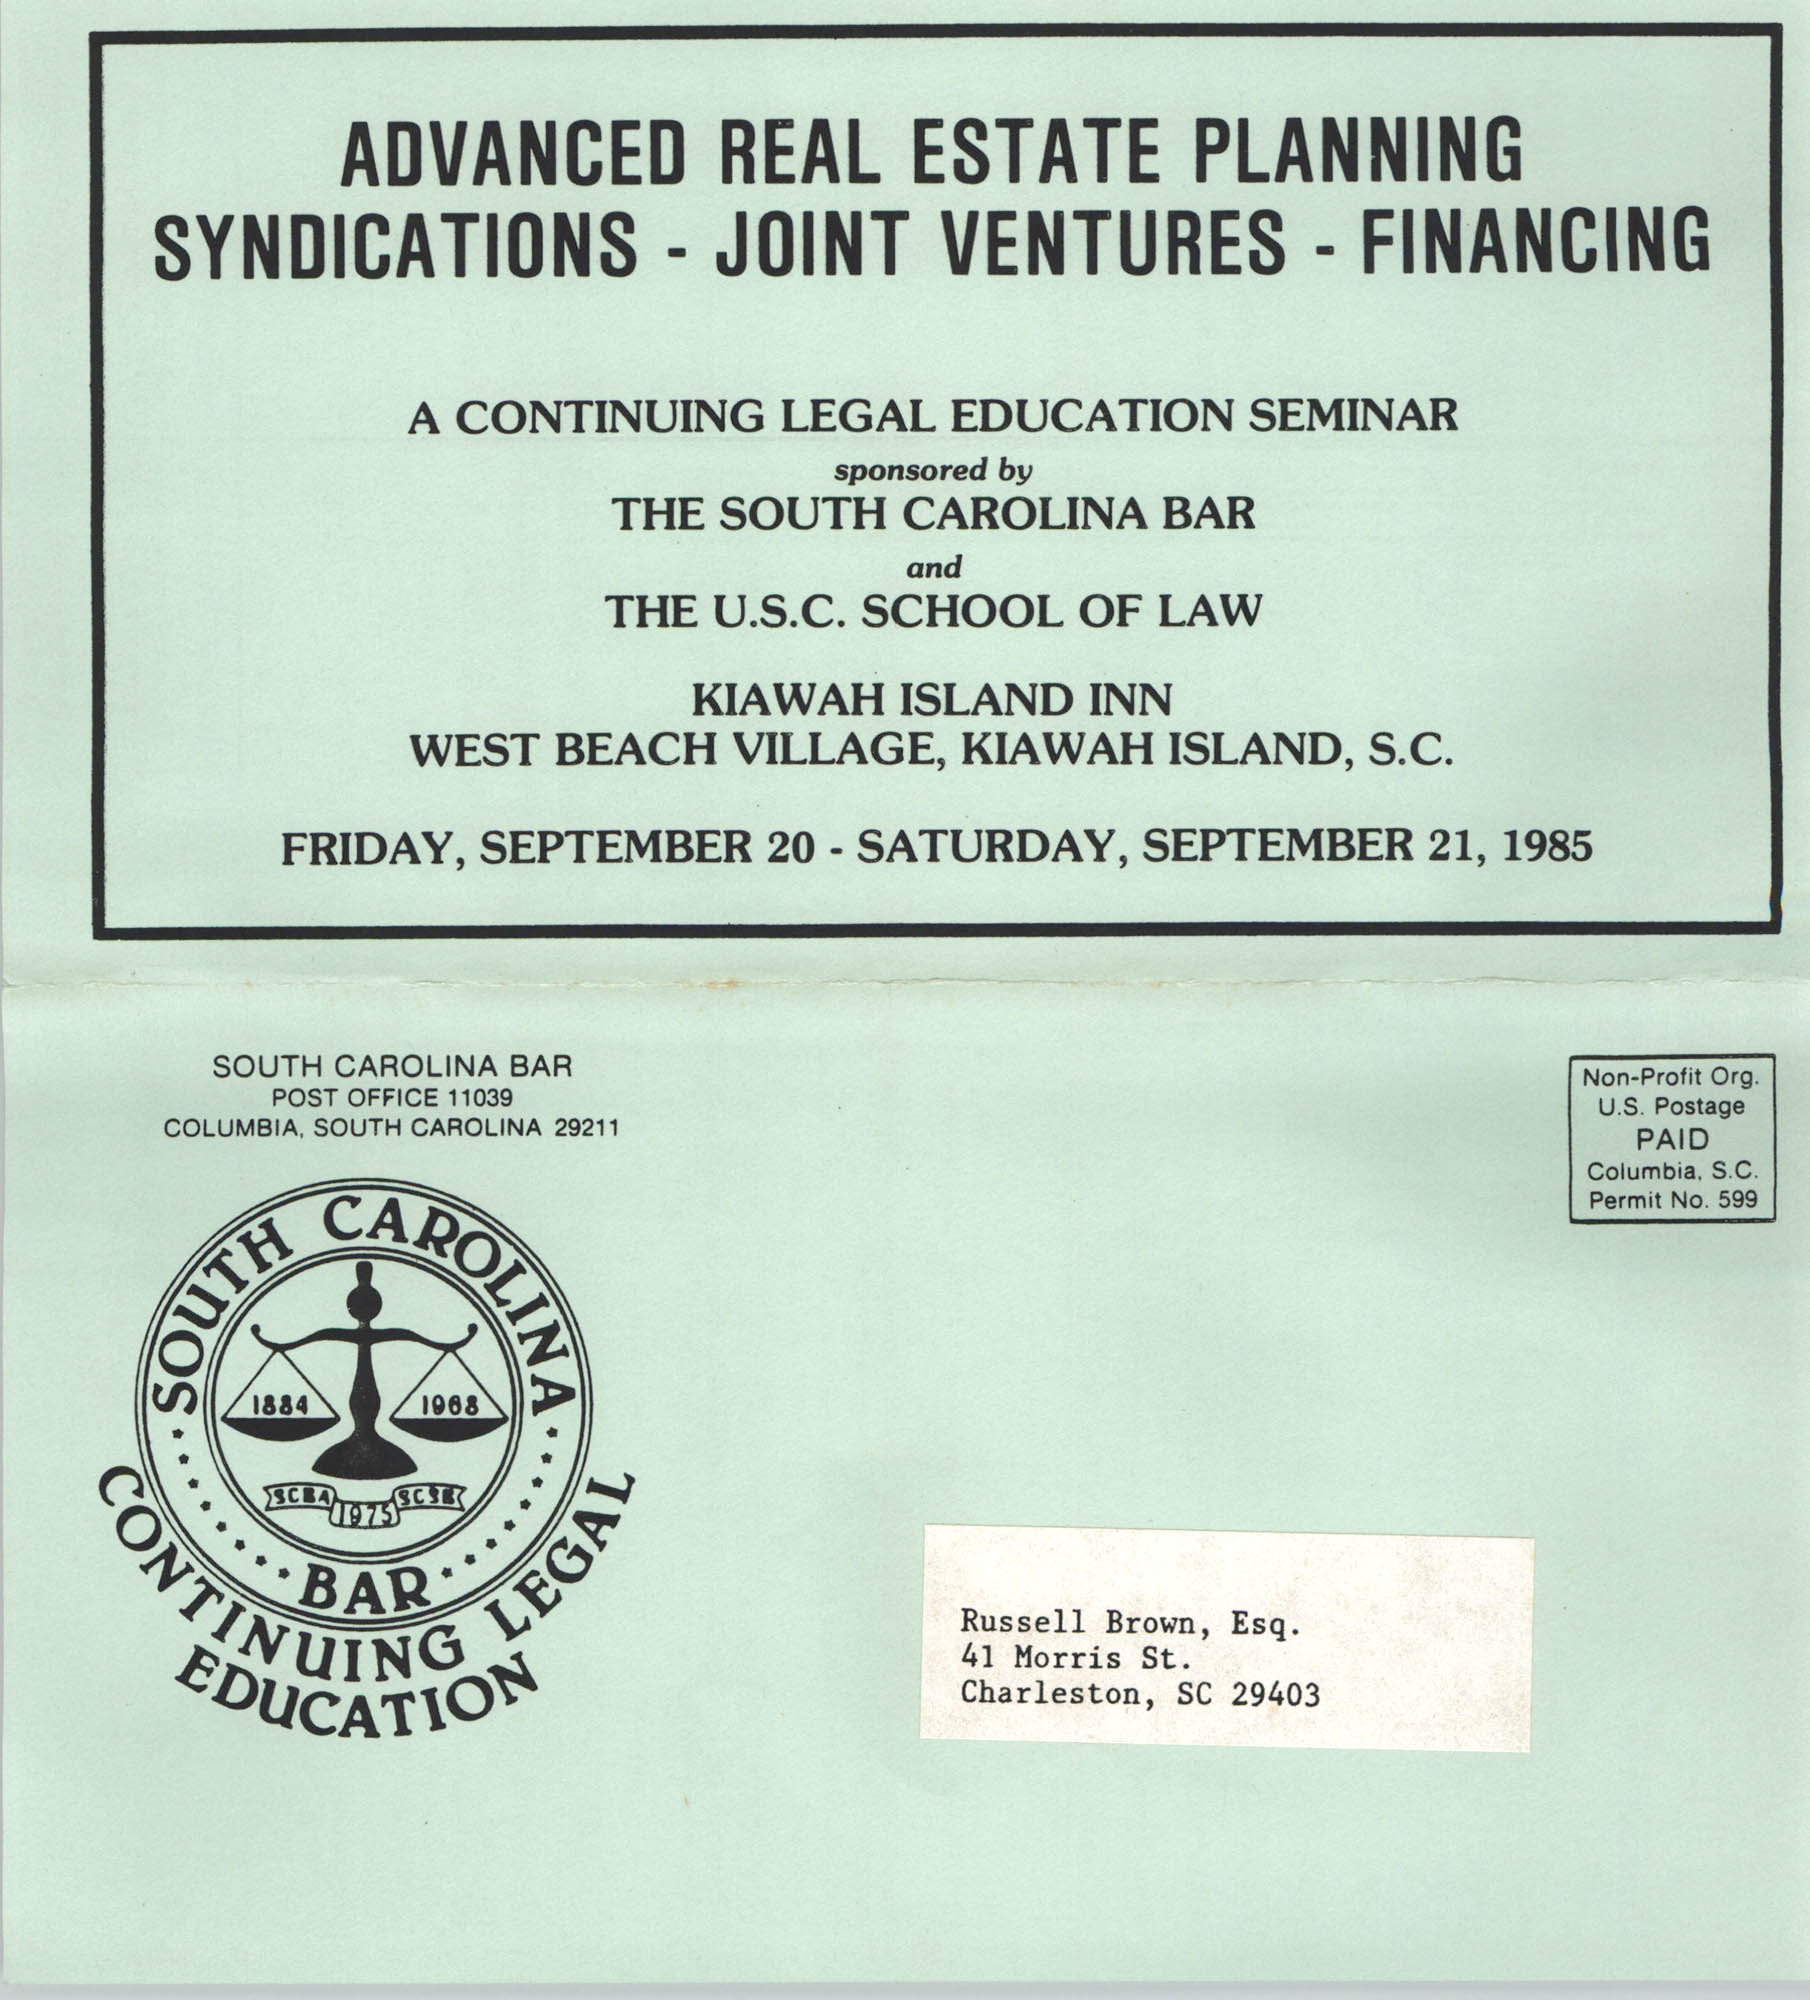 Advanced Real Estate Planning Syndications-Joint Ventures-Financing, Continuing Legal Education Seminar Pamphlet, September 20-21, 1985, Russell Brown